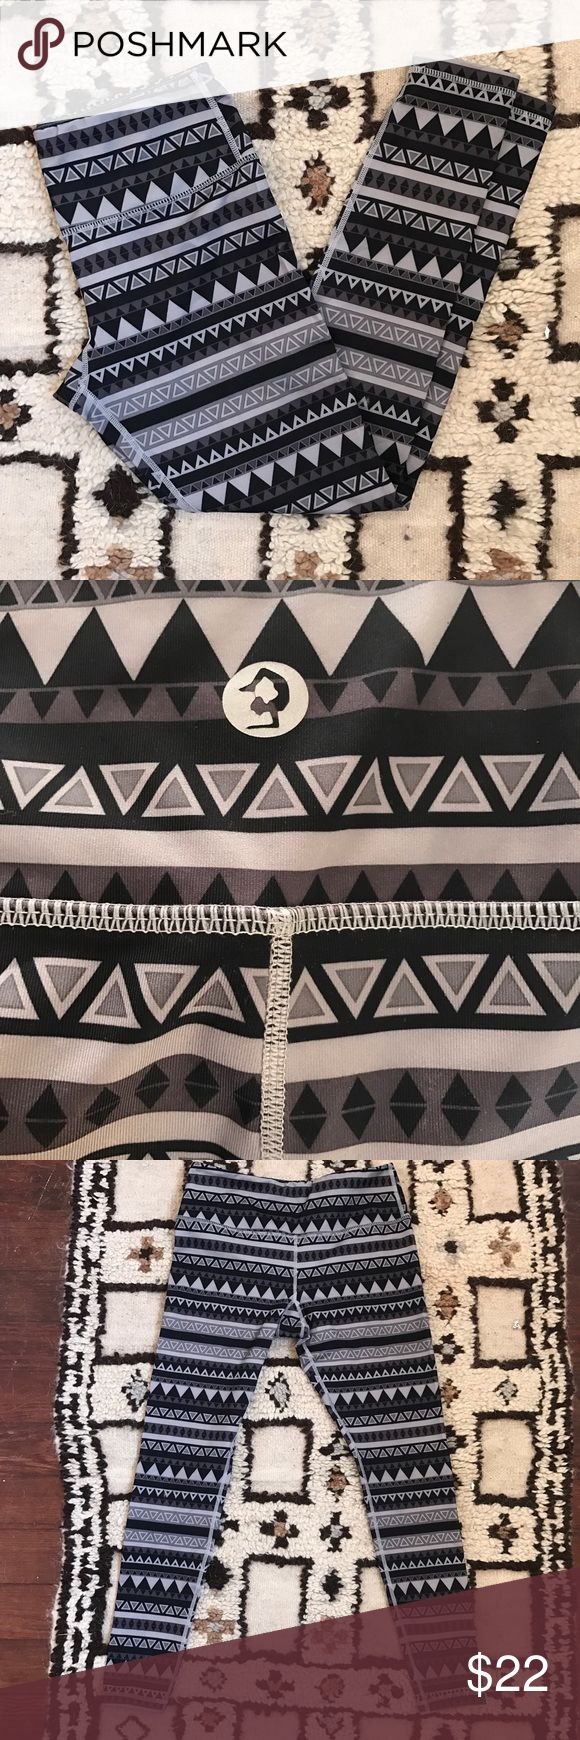 Scorpio Sol Aztec print yoga leggings size S Gorgeous Aztec printed leggings made by Scorpio Sol. EUC, no signs of wear. Thick material, no worries about see-thru leggings in down dog! So cute and comfy!! scorpio sol Pants Leggings